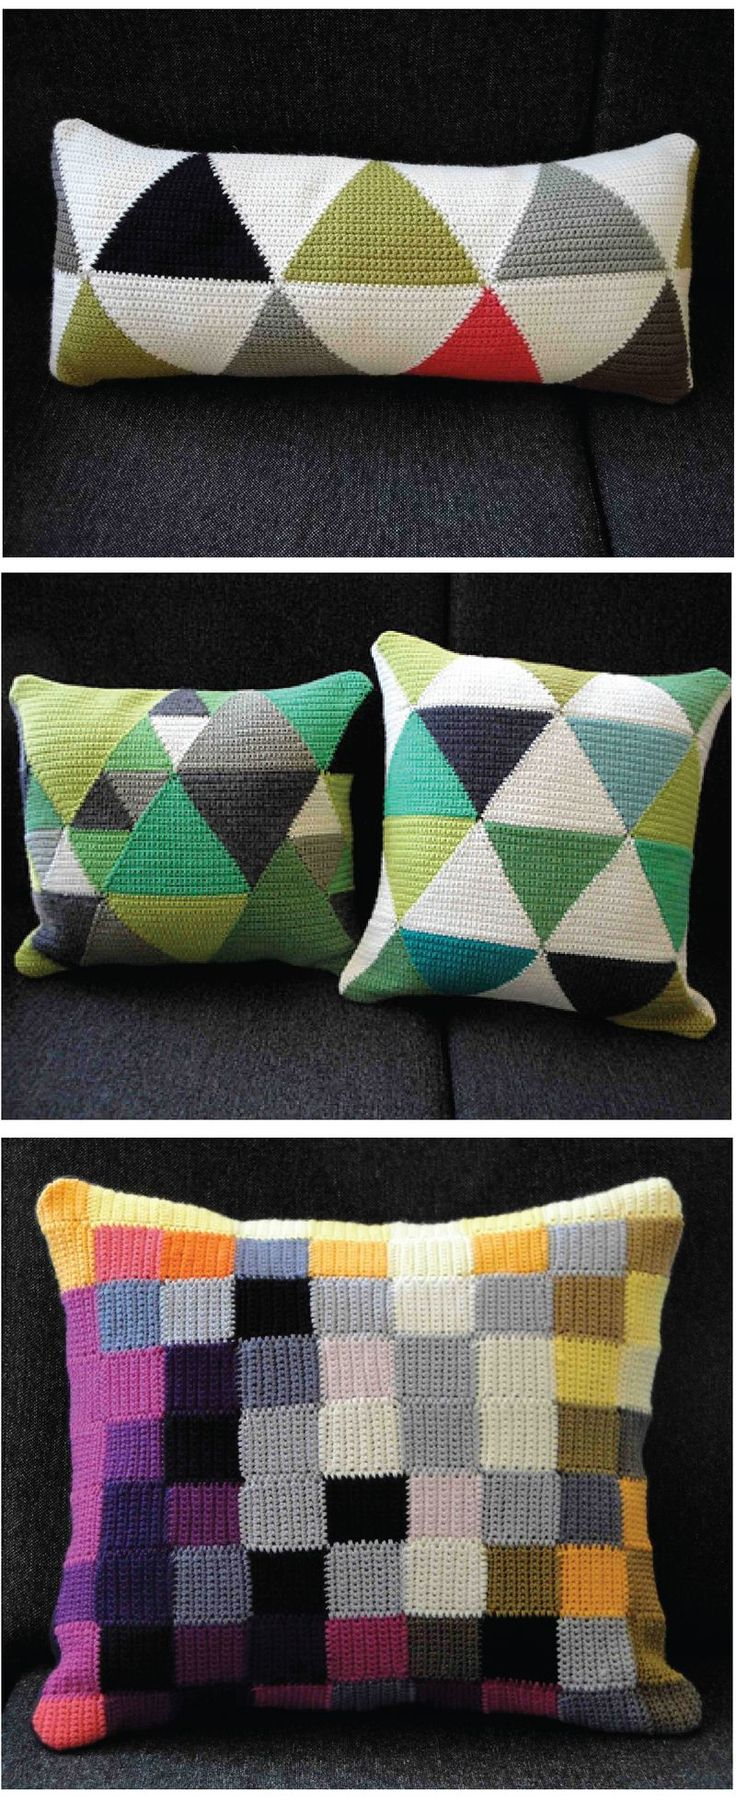 crochet pillows Graphic color blocking. Love when traditional craft is applied to modern design! @Megan Freeman This screams you!